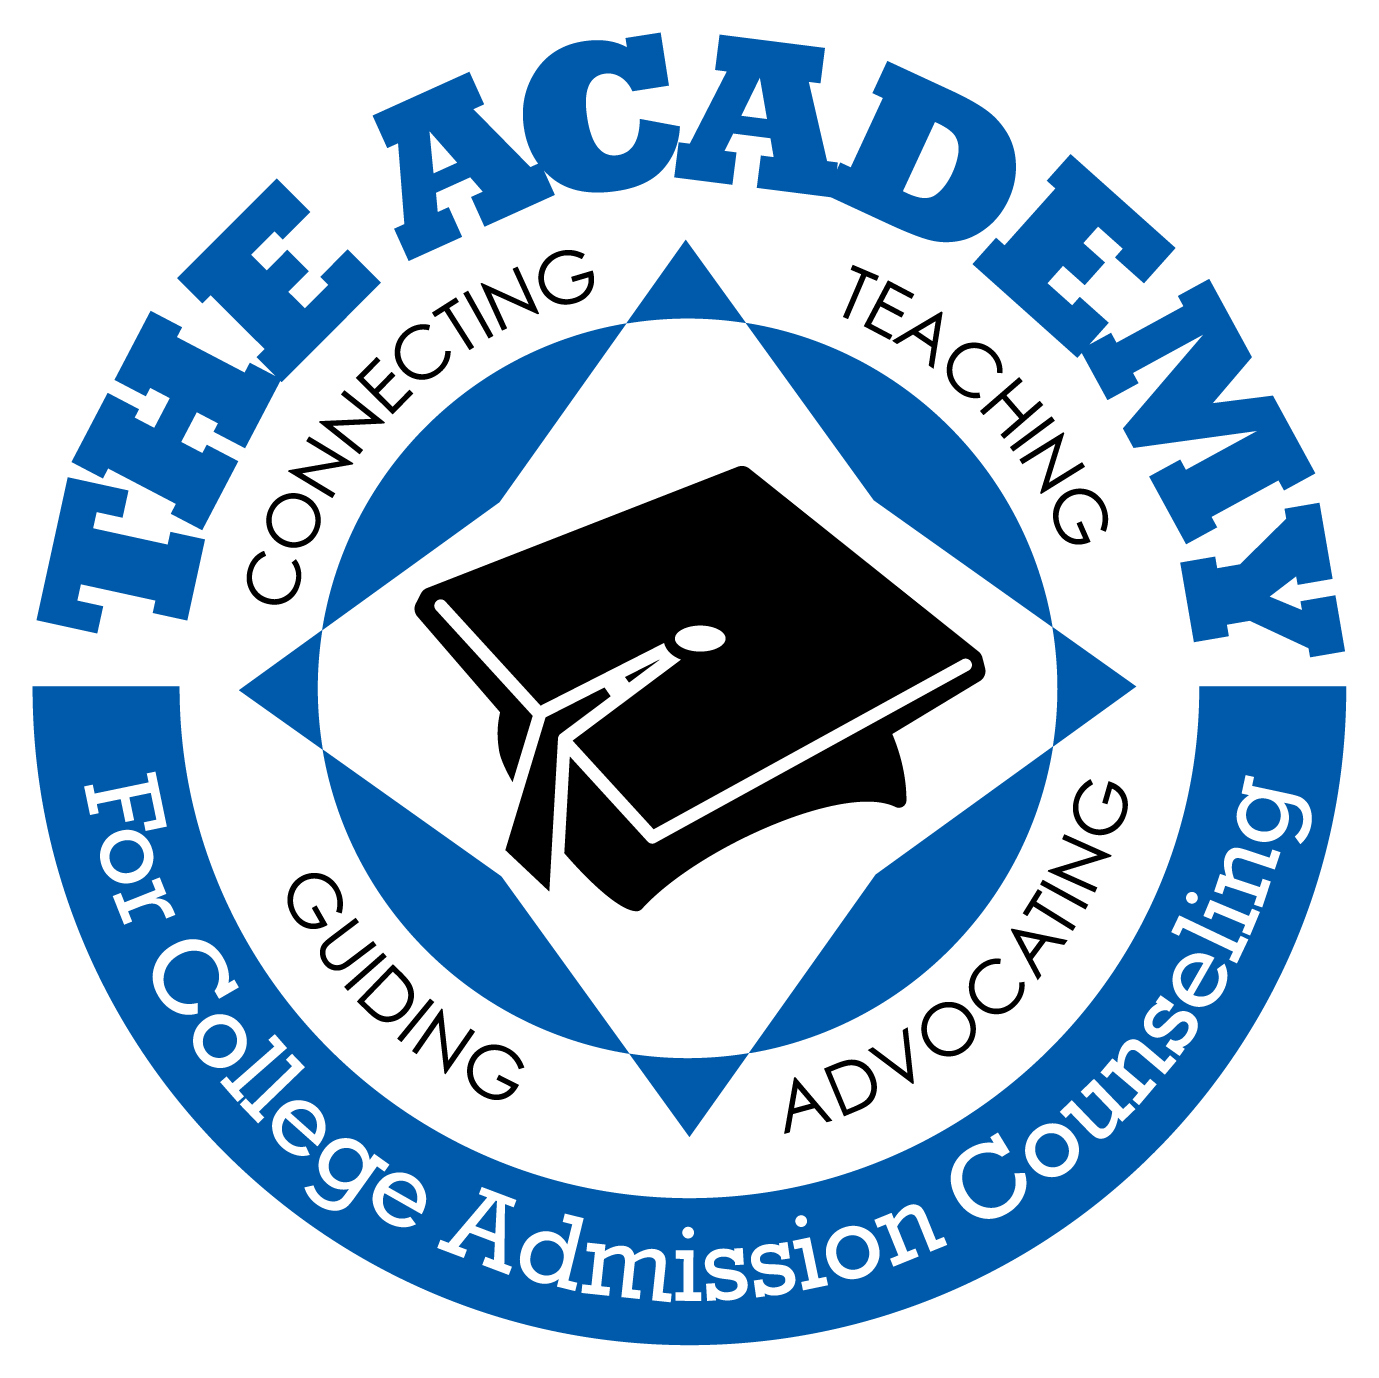 The Academy: Welcome To The Academy For College Admission Counseling